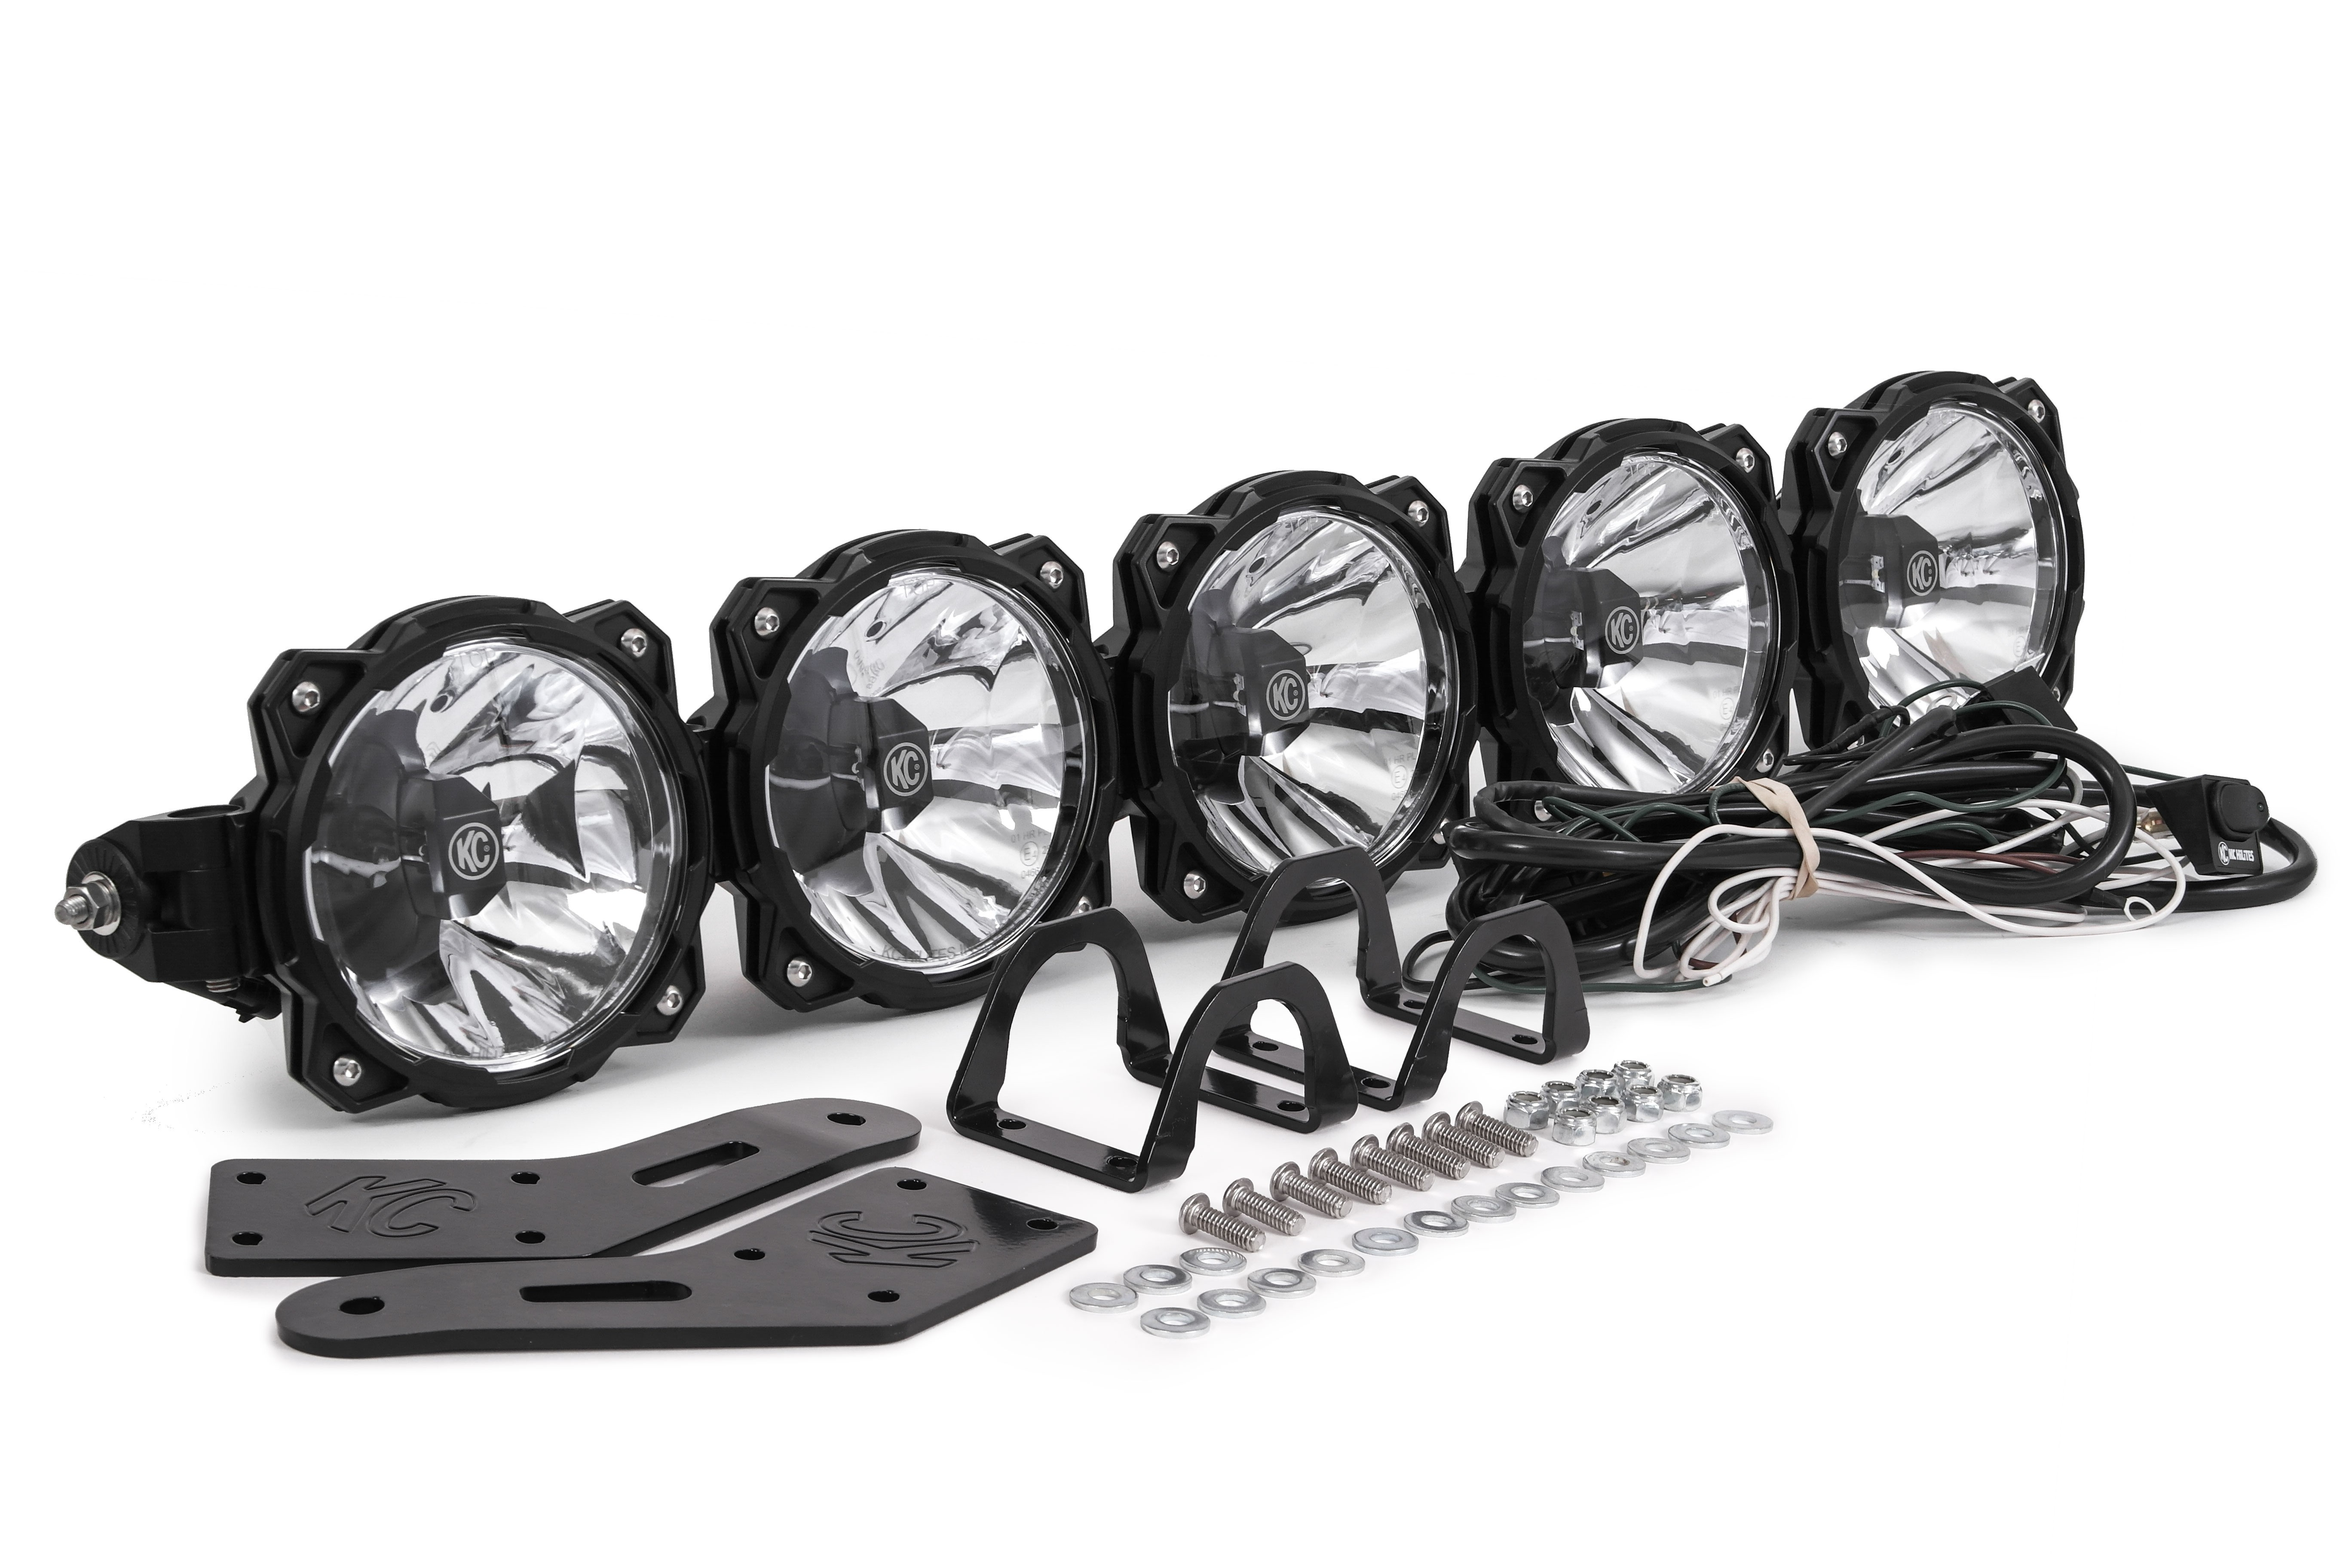 GRAVITY LED PRO6 LED LIGHT BAR